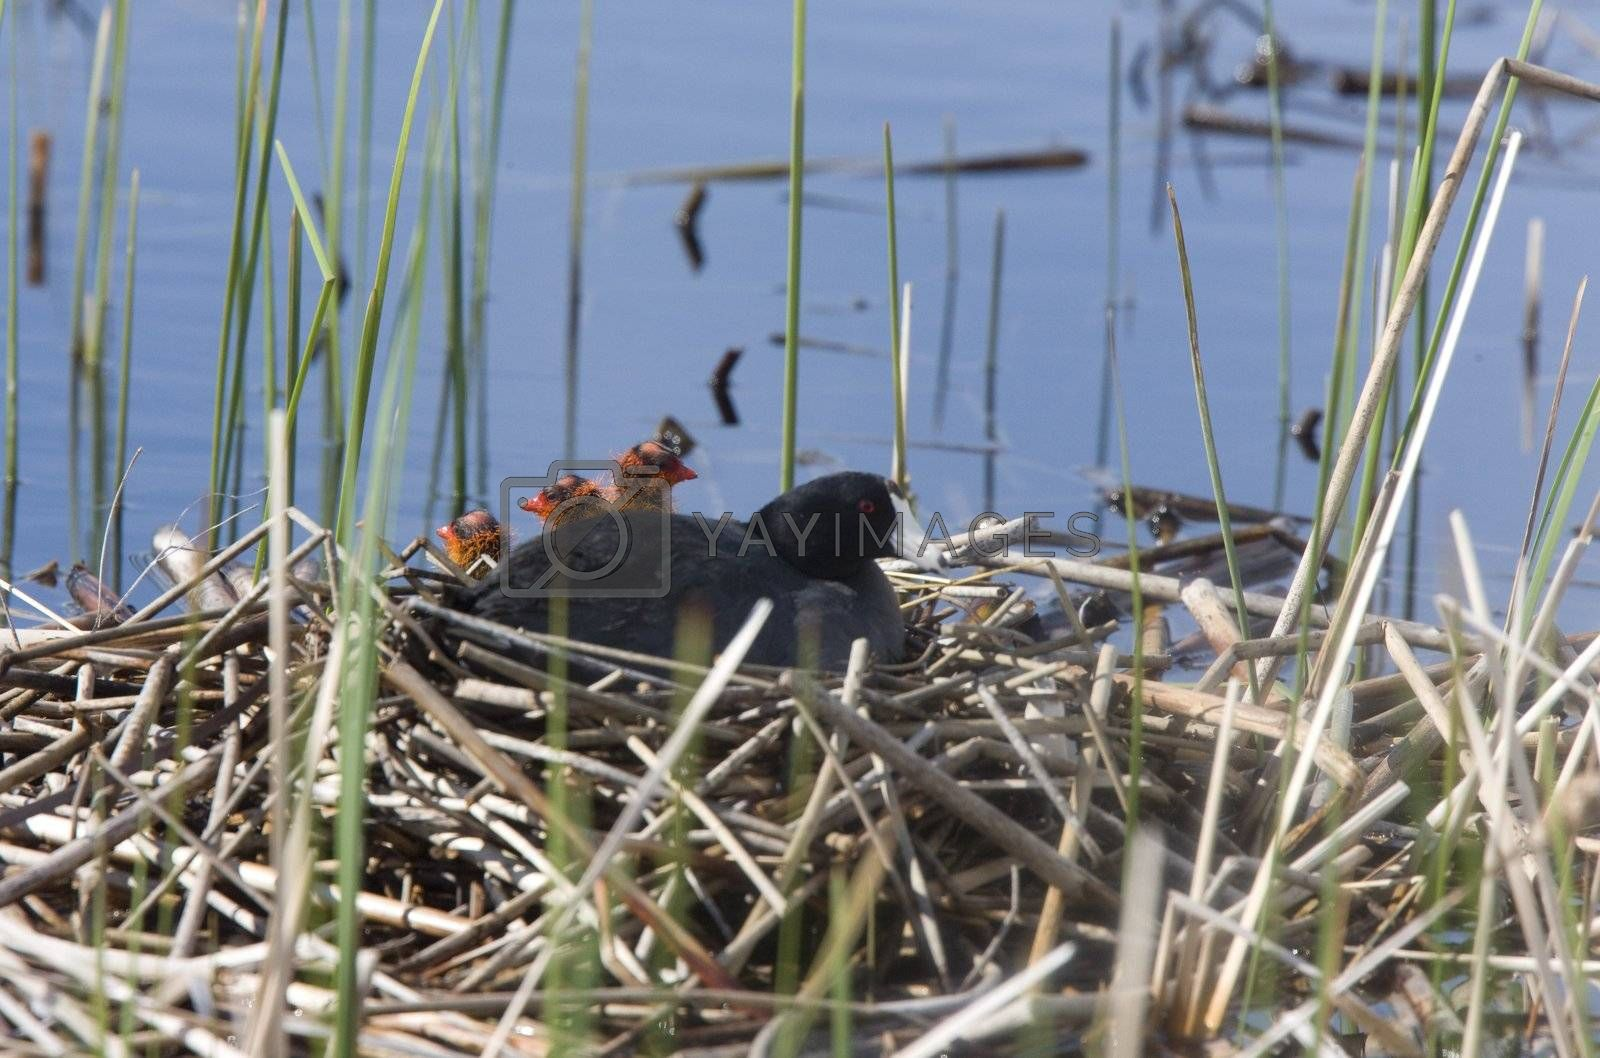 Coot or Waterhen with babies by pictureguy